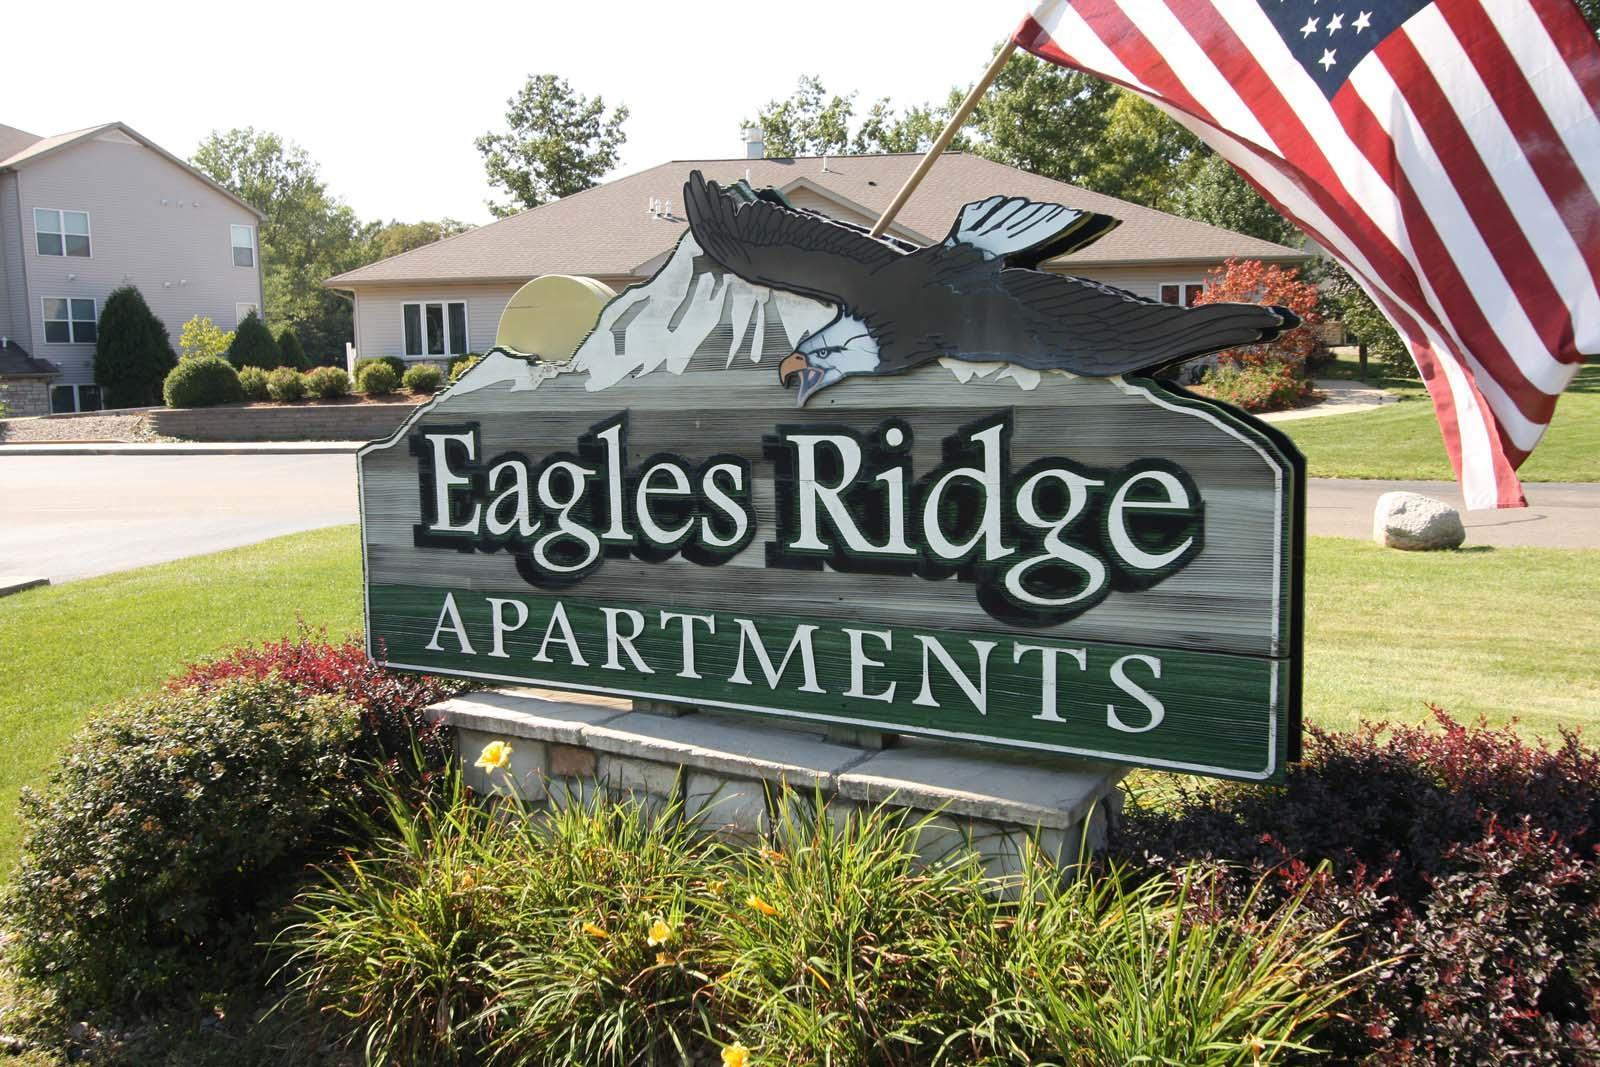 Eagles Ridge Apartments - Battle Creek, MI 49037 - (269)965-3613 | ShowMeLocal.com